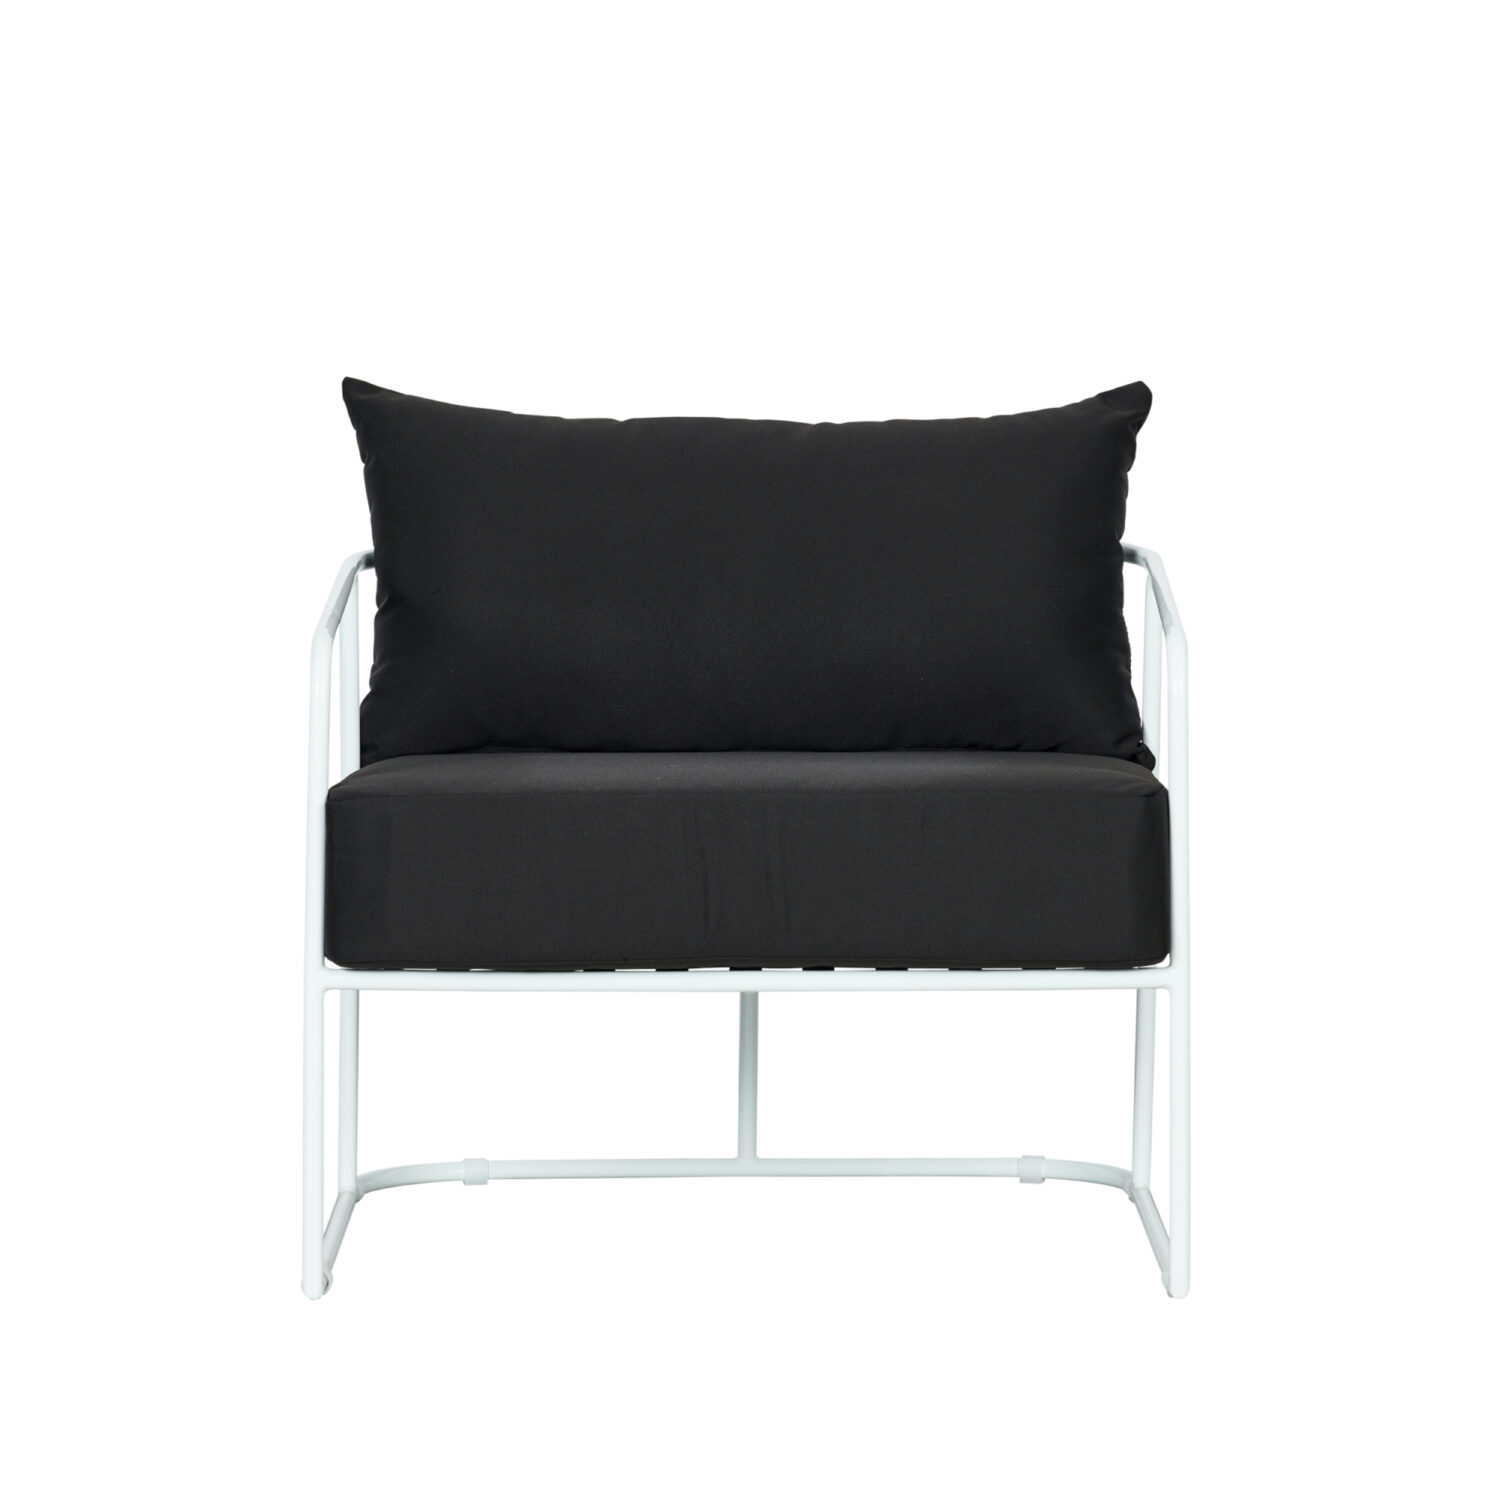 Portofino Armchair - White Frame / Black Cushion - Event Artillery